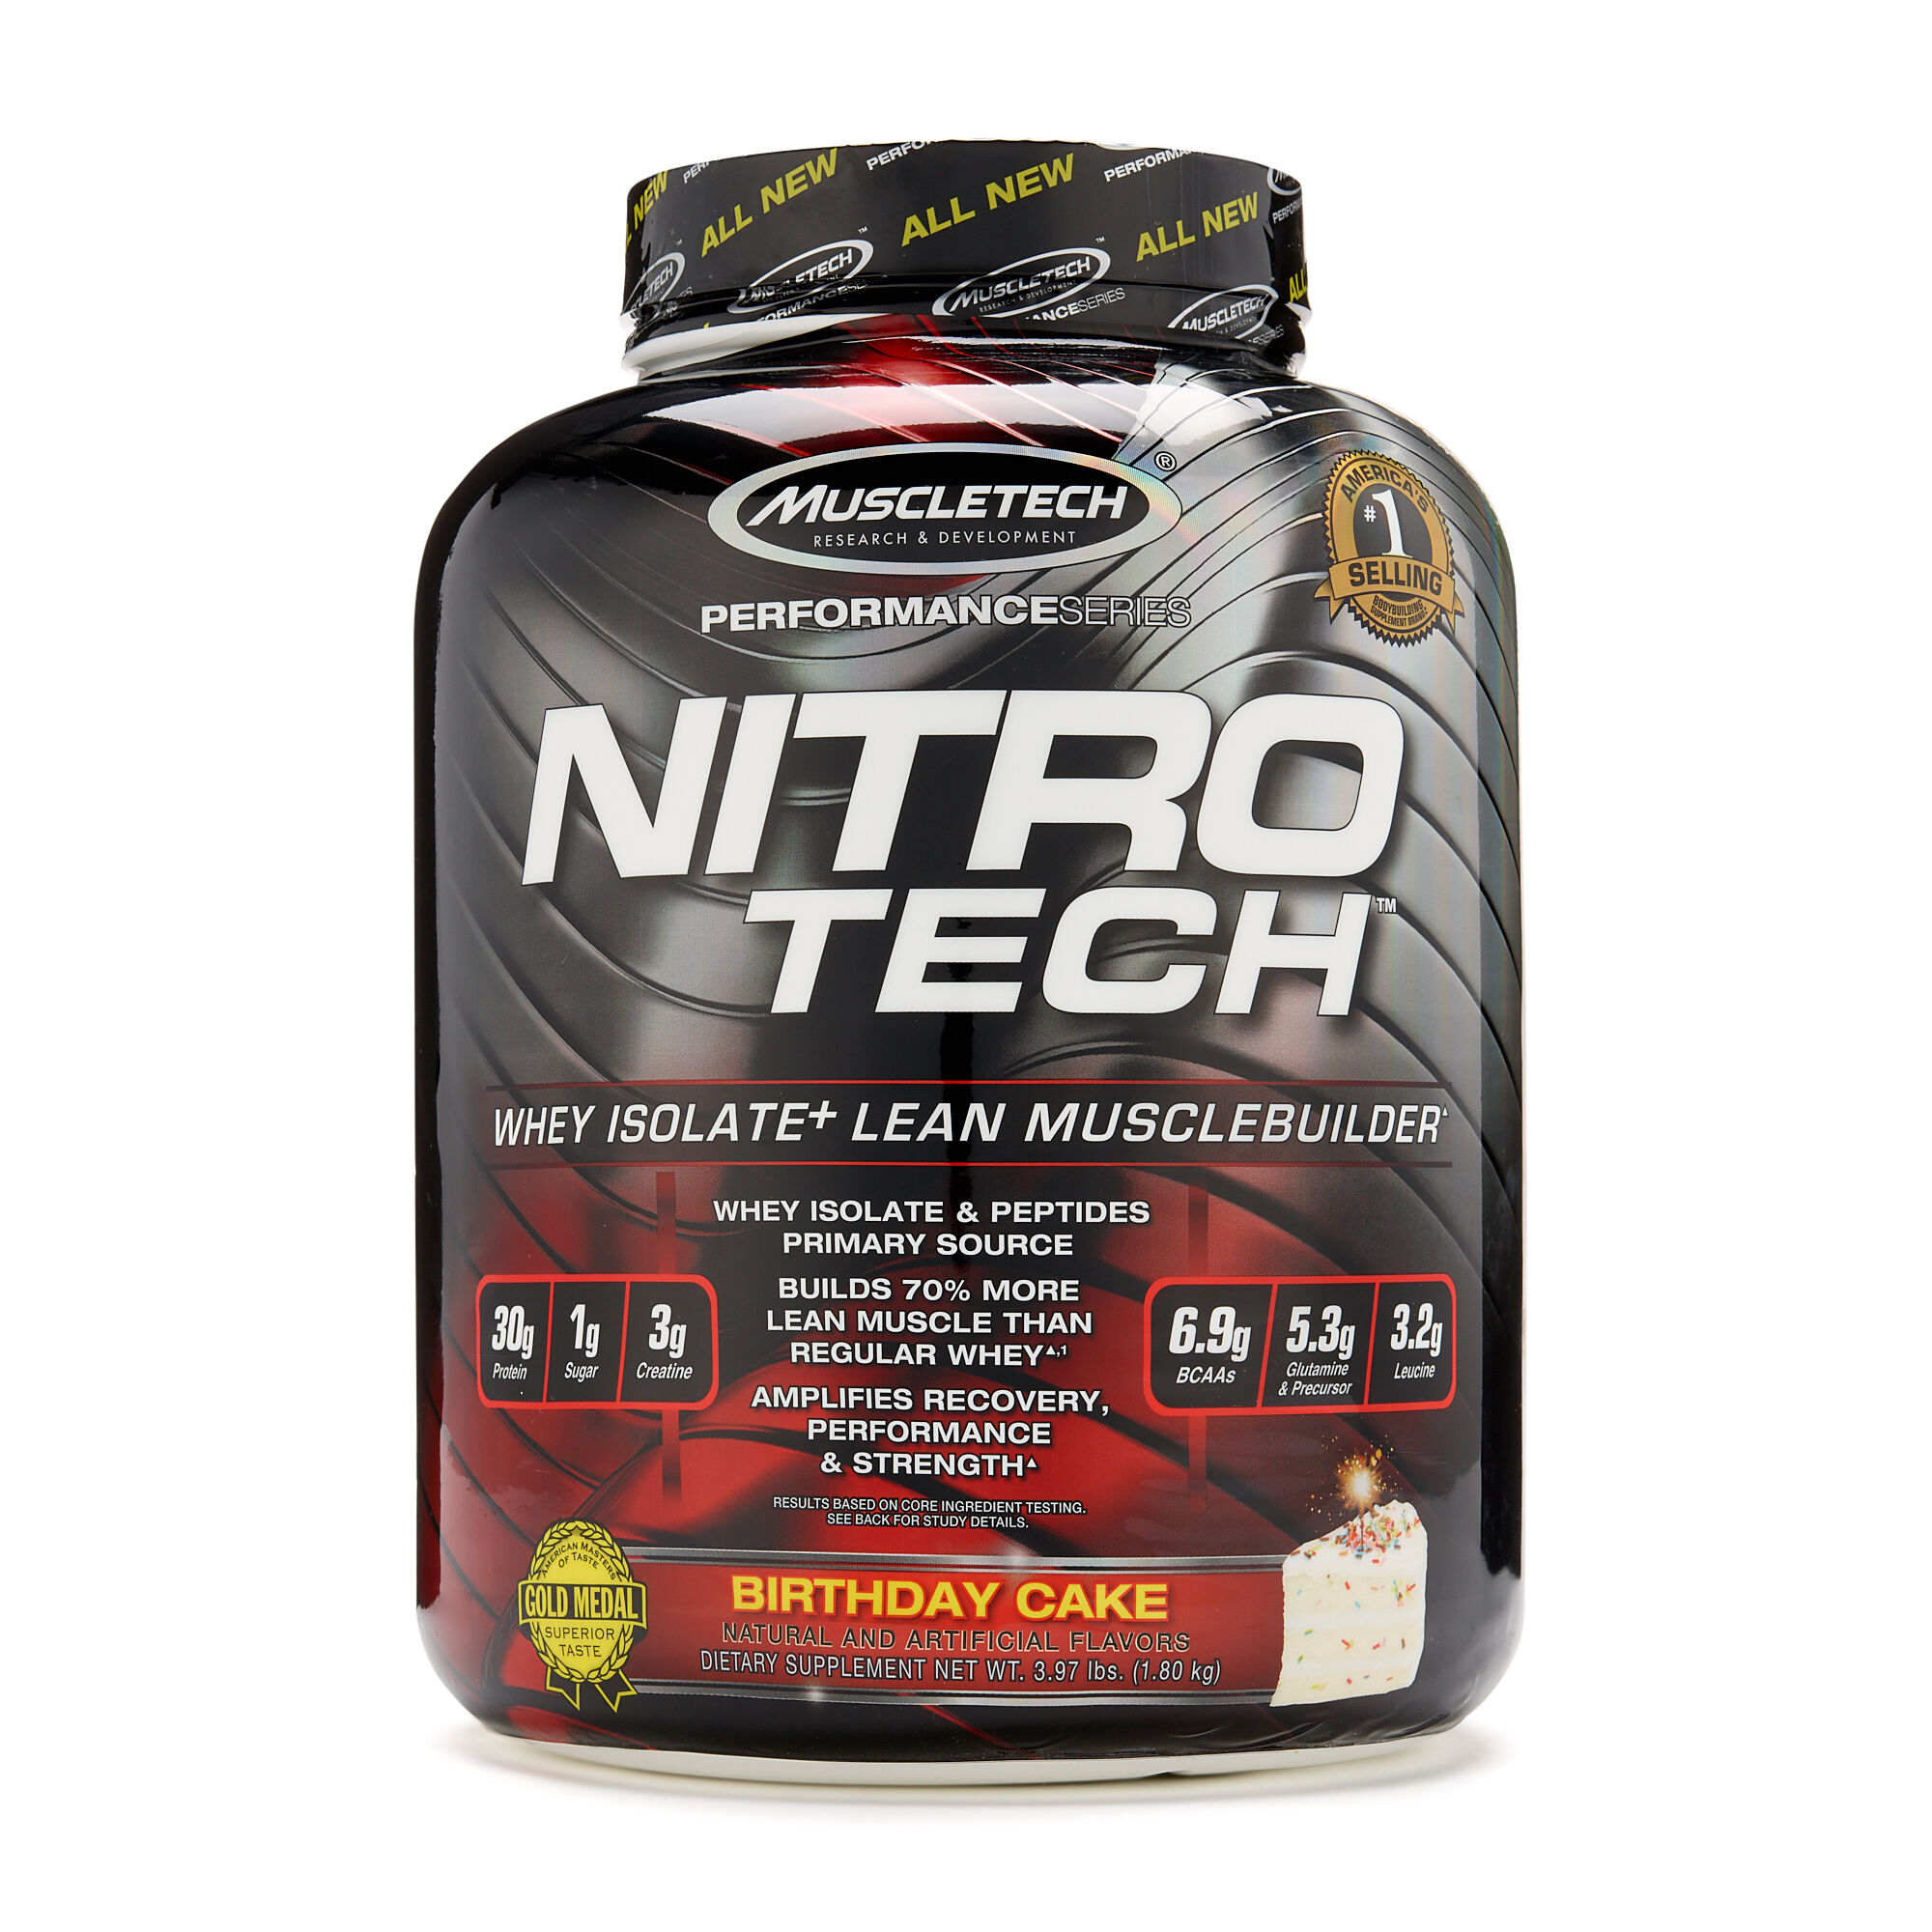 MuscleTechR Nitro TechTM